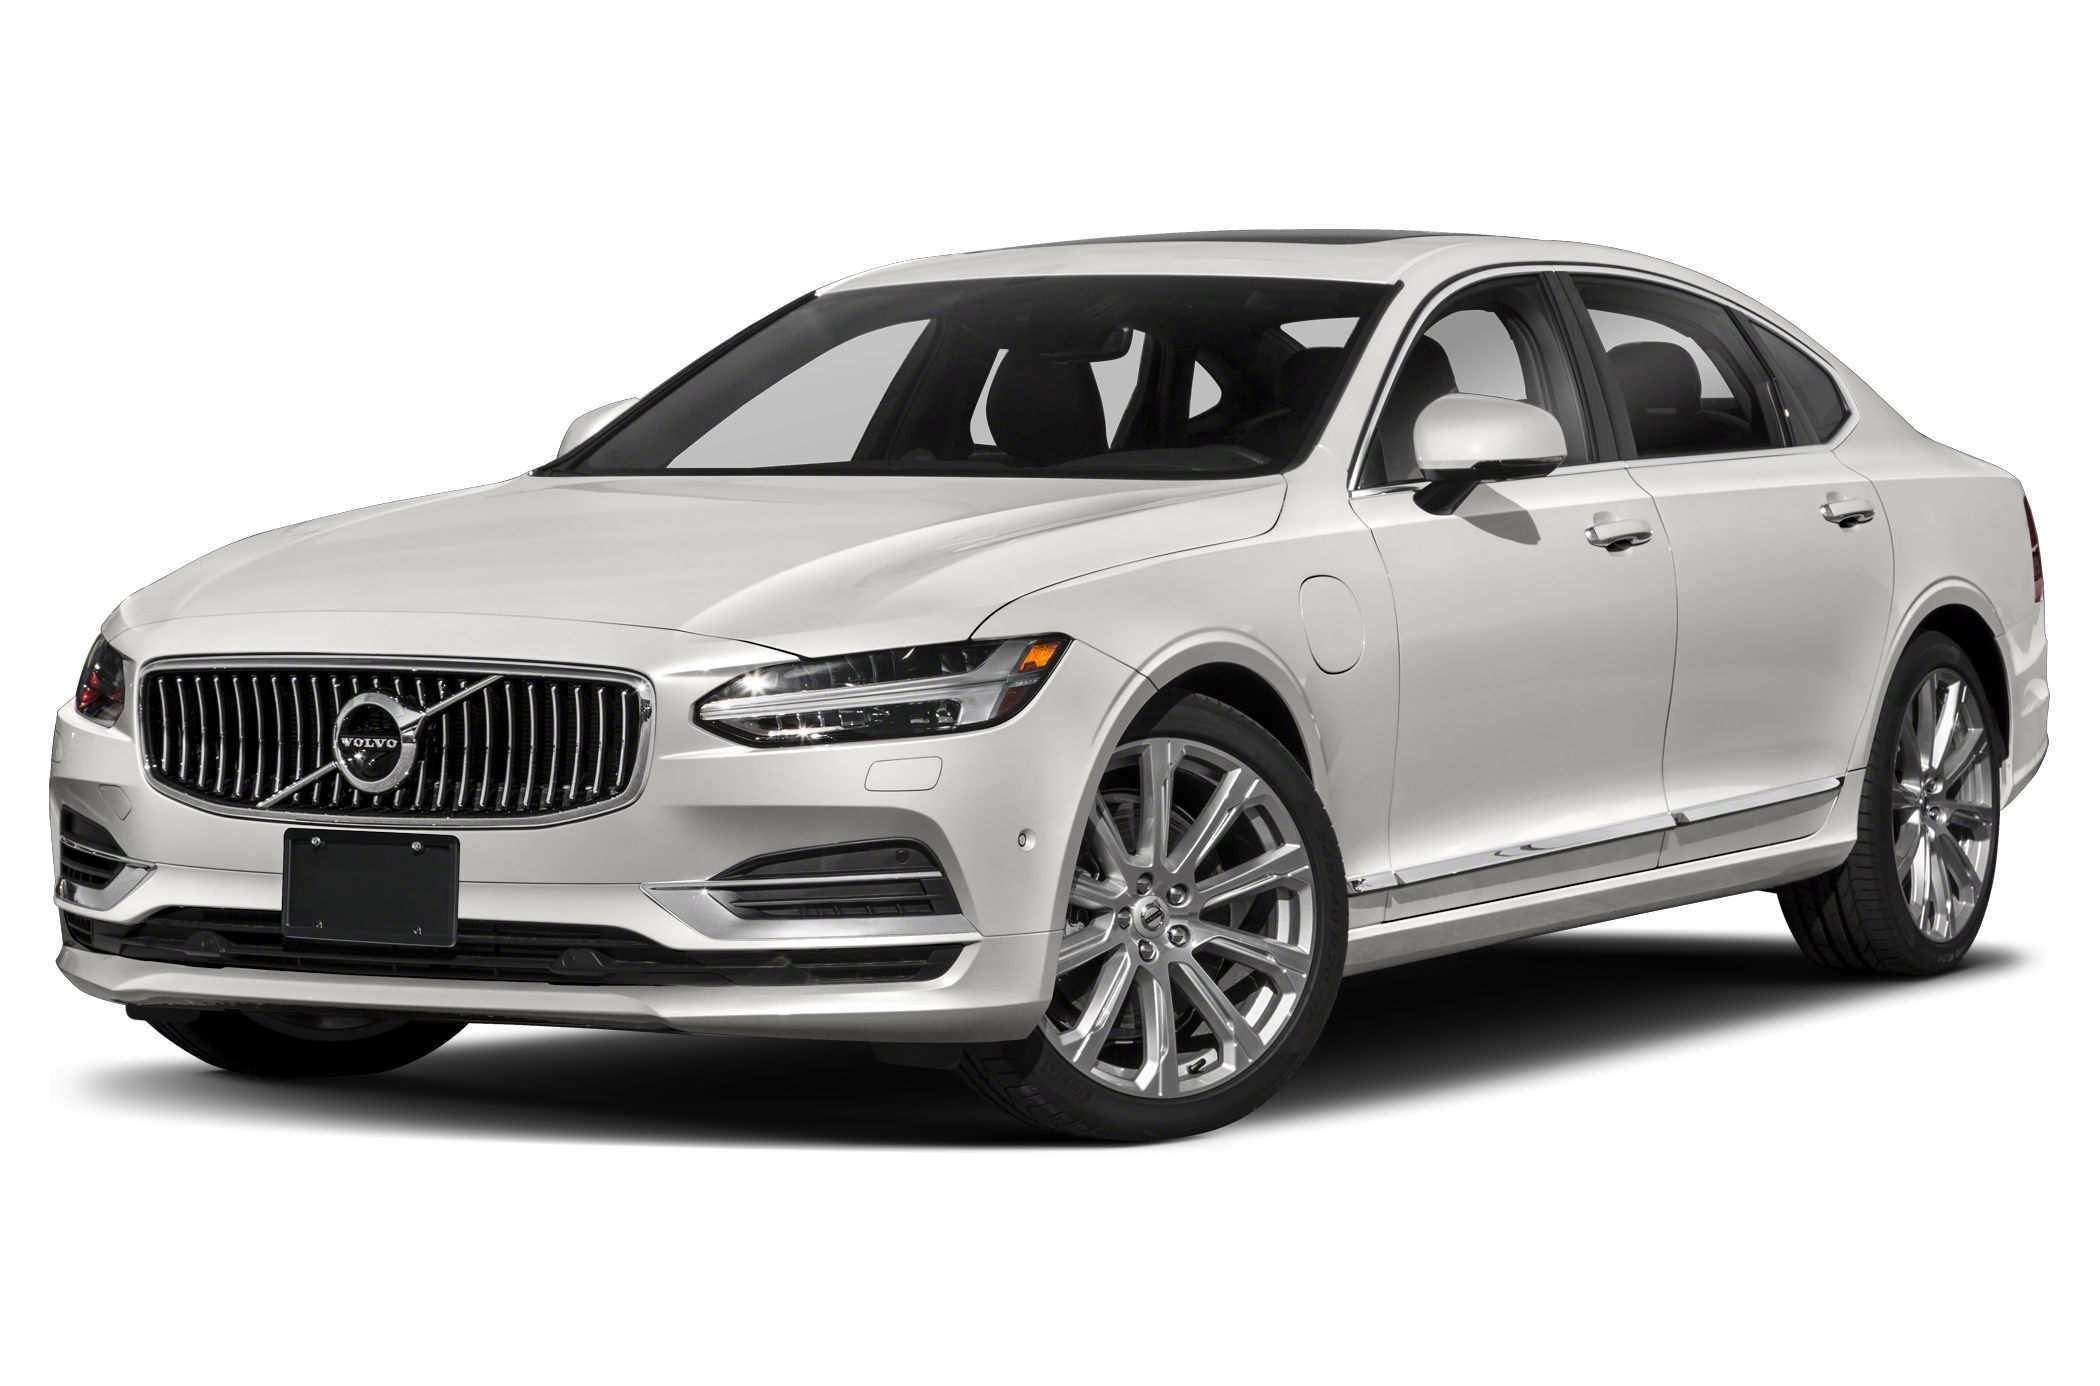 17 Gallery of The S90 Volvo 2019 Review Wallpaper for The S90 Volvo 2019 Review